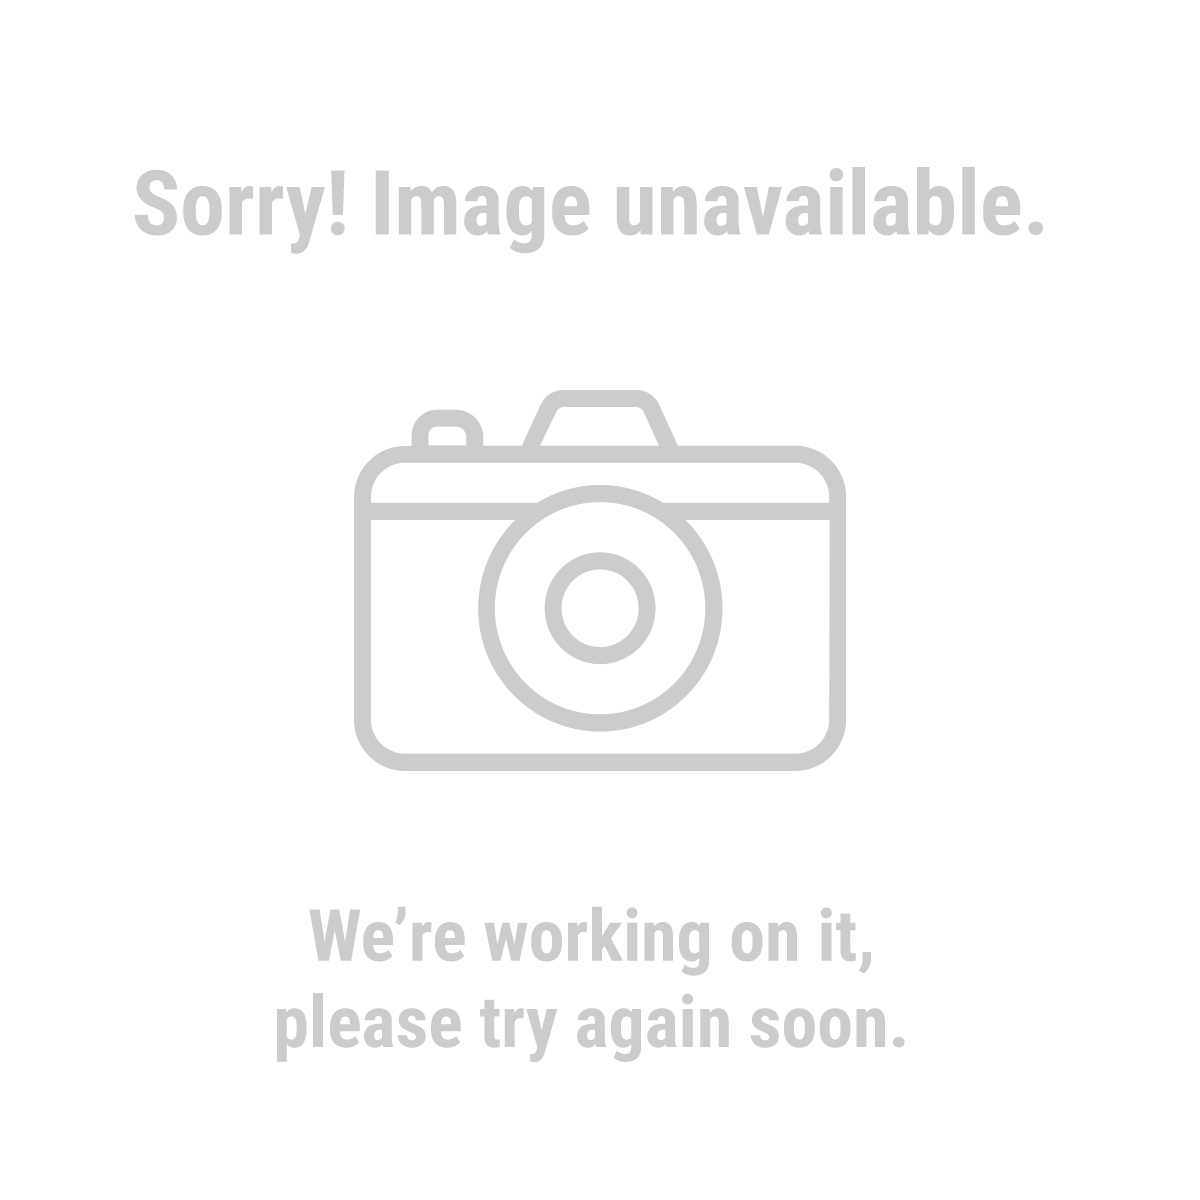 Pittsburgh Automotive 62788 Master Fuel Injection Pressure Test Kit